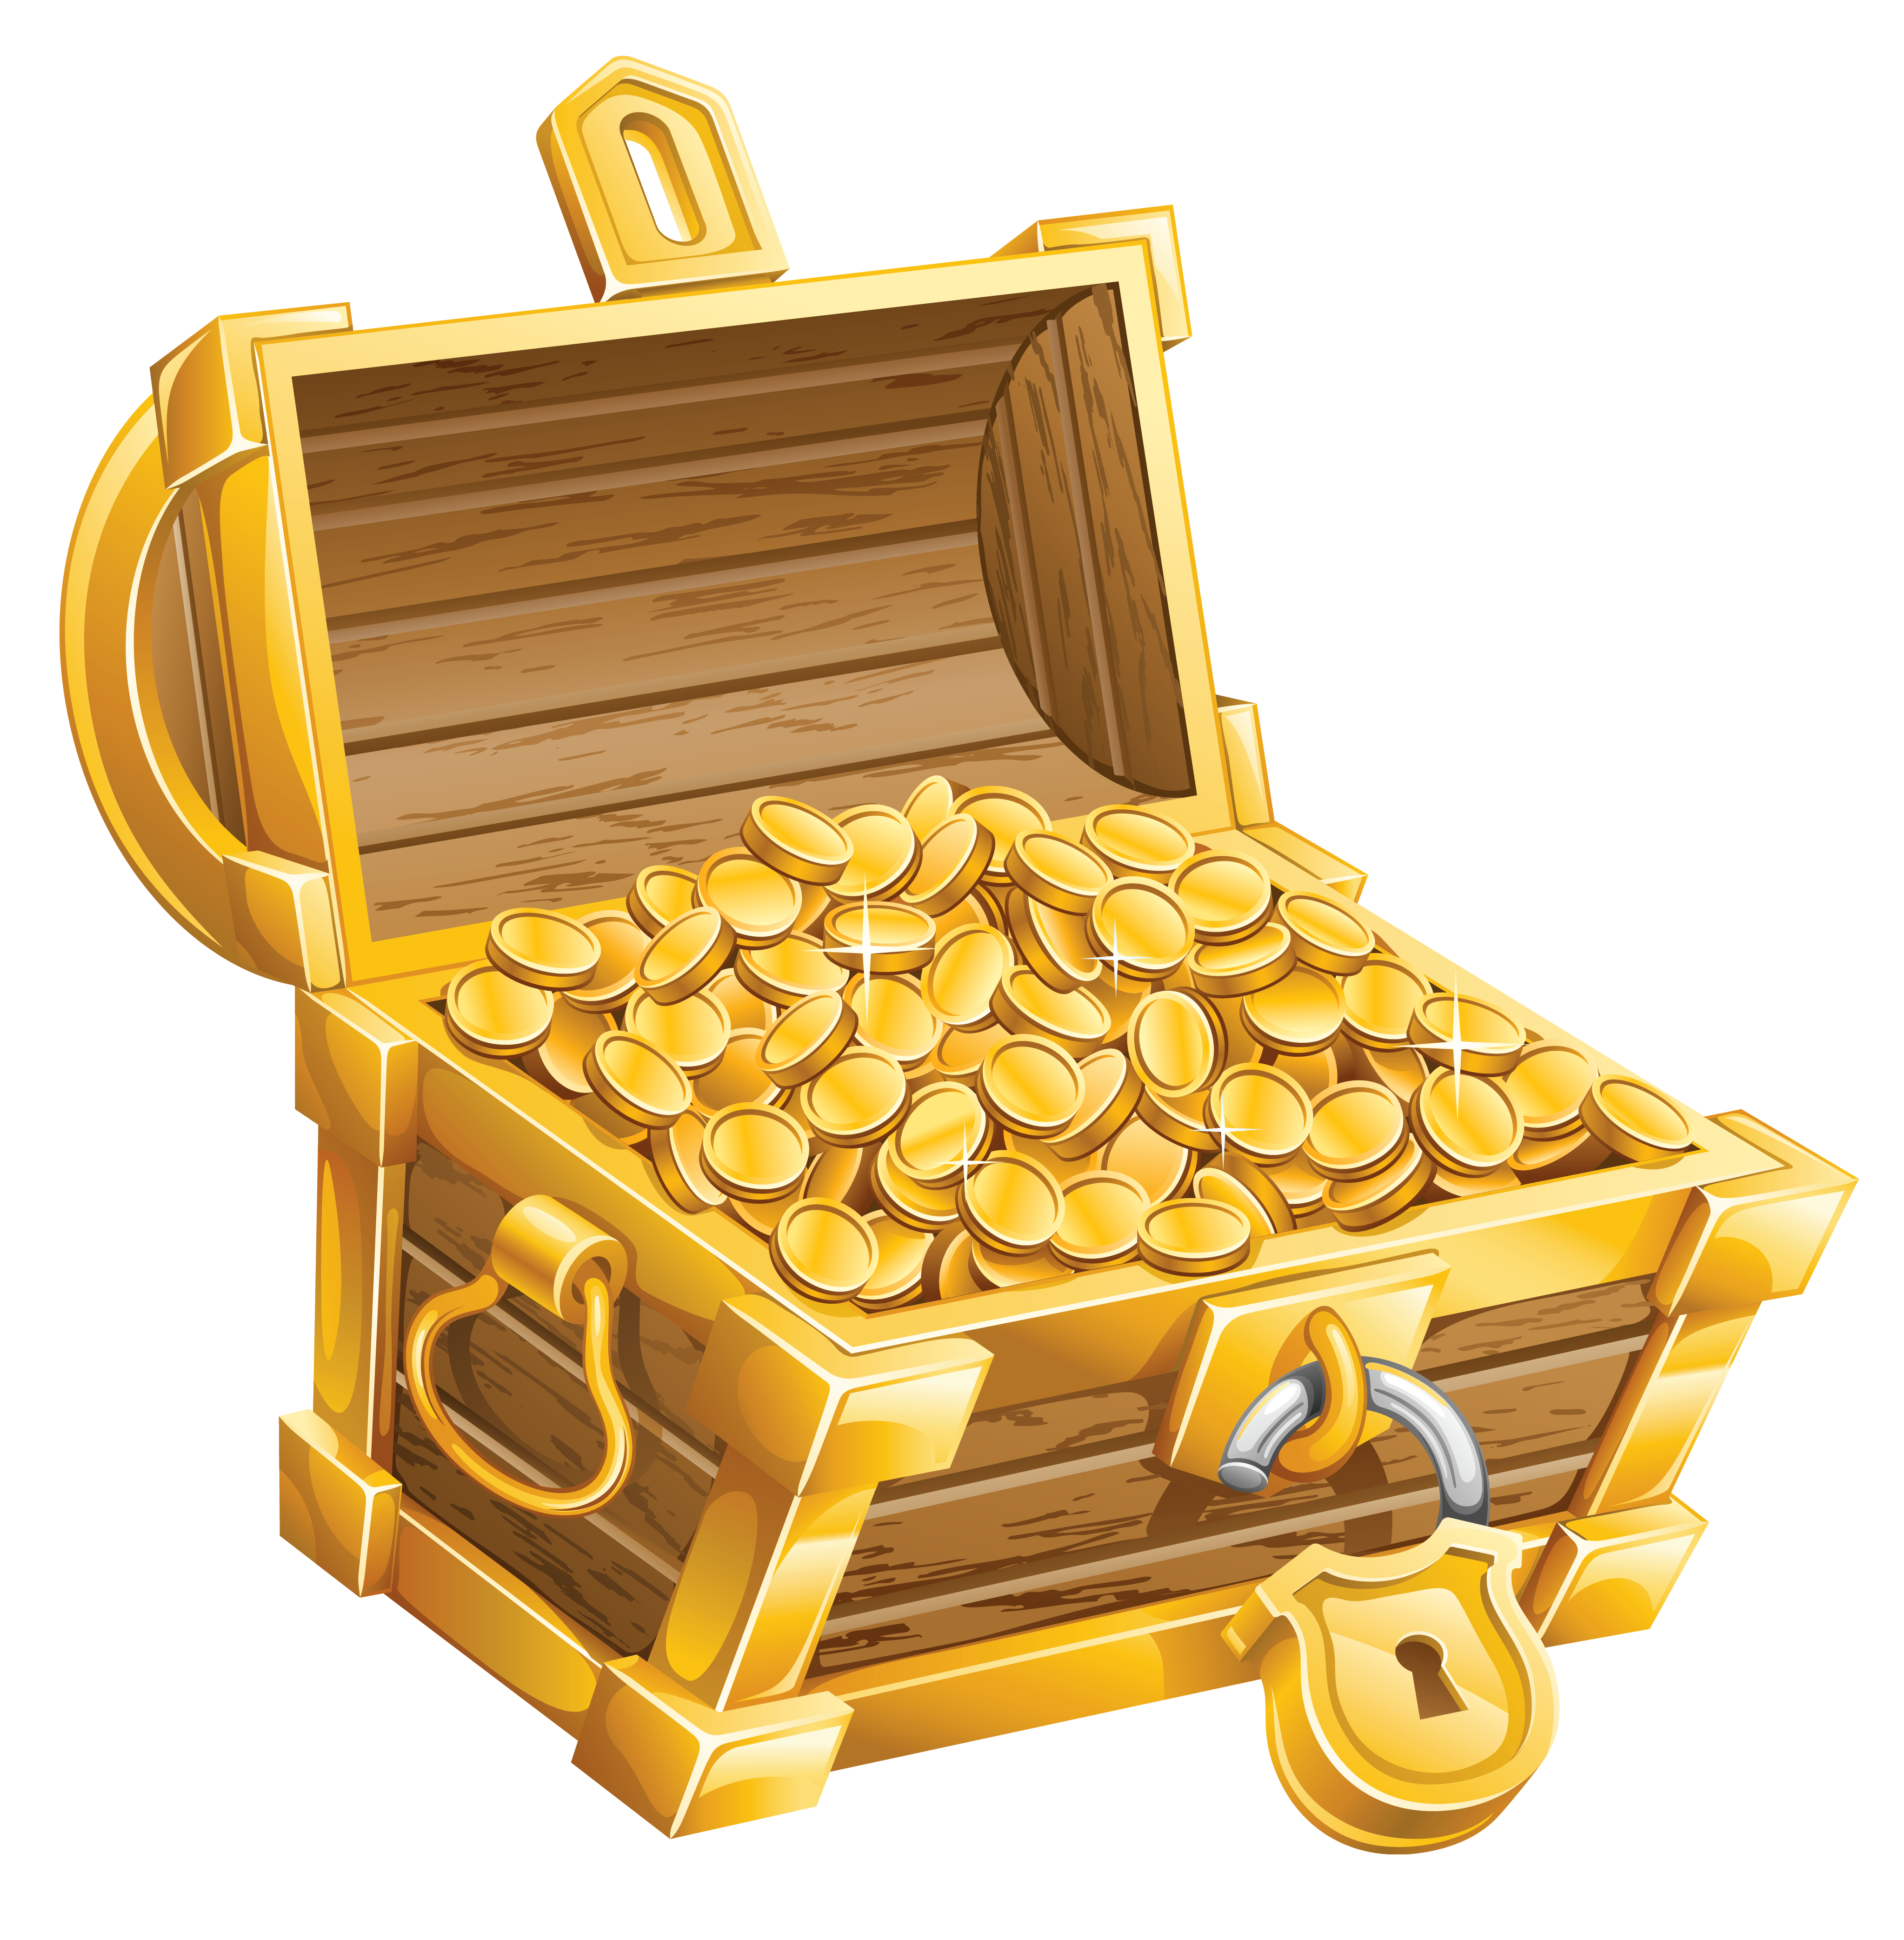 Png chest. Treasure clipart picture gallery